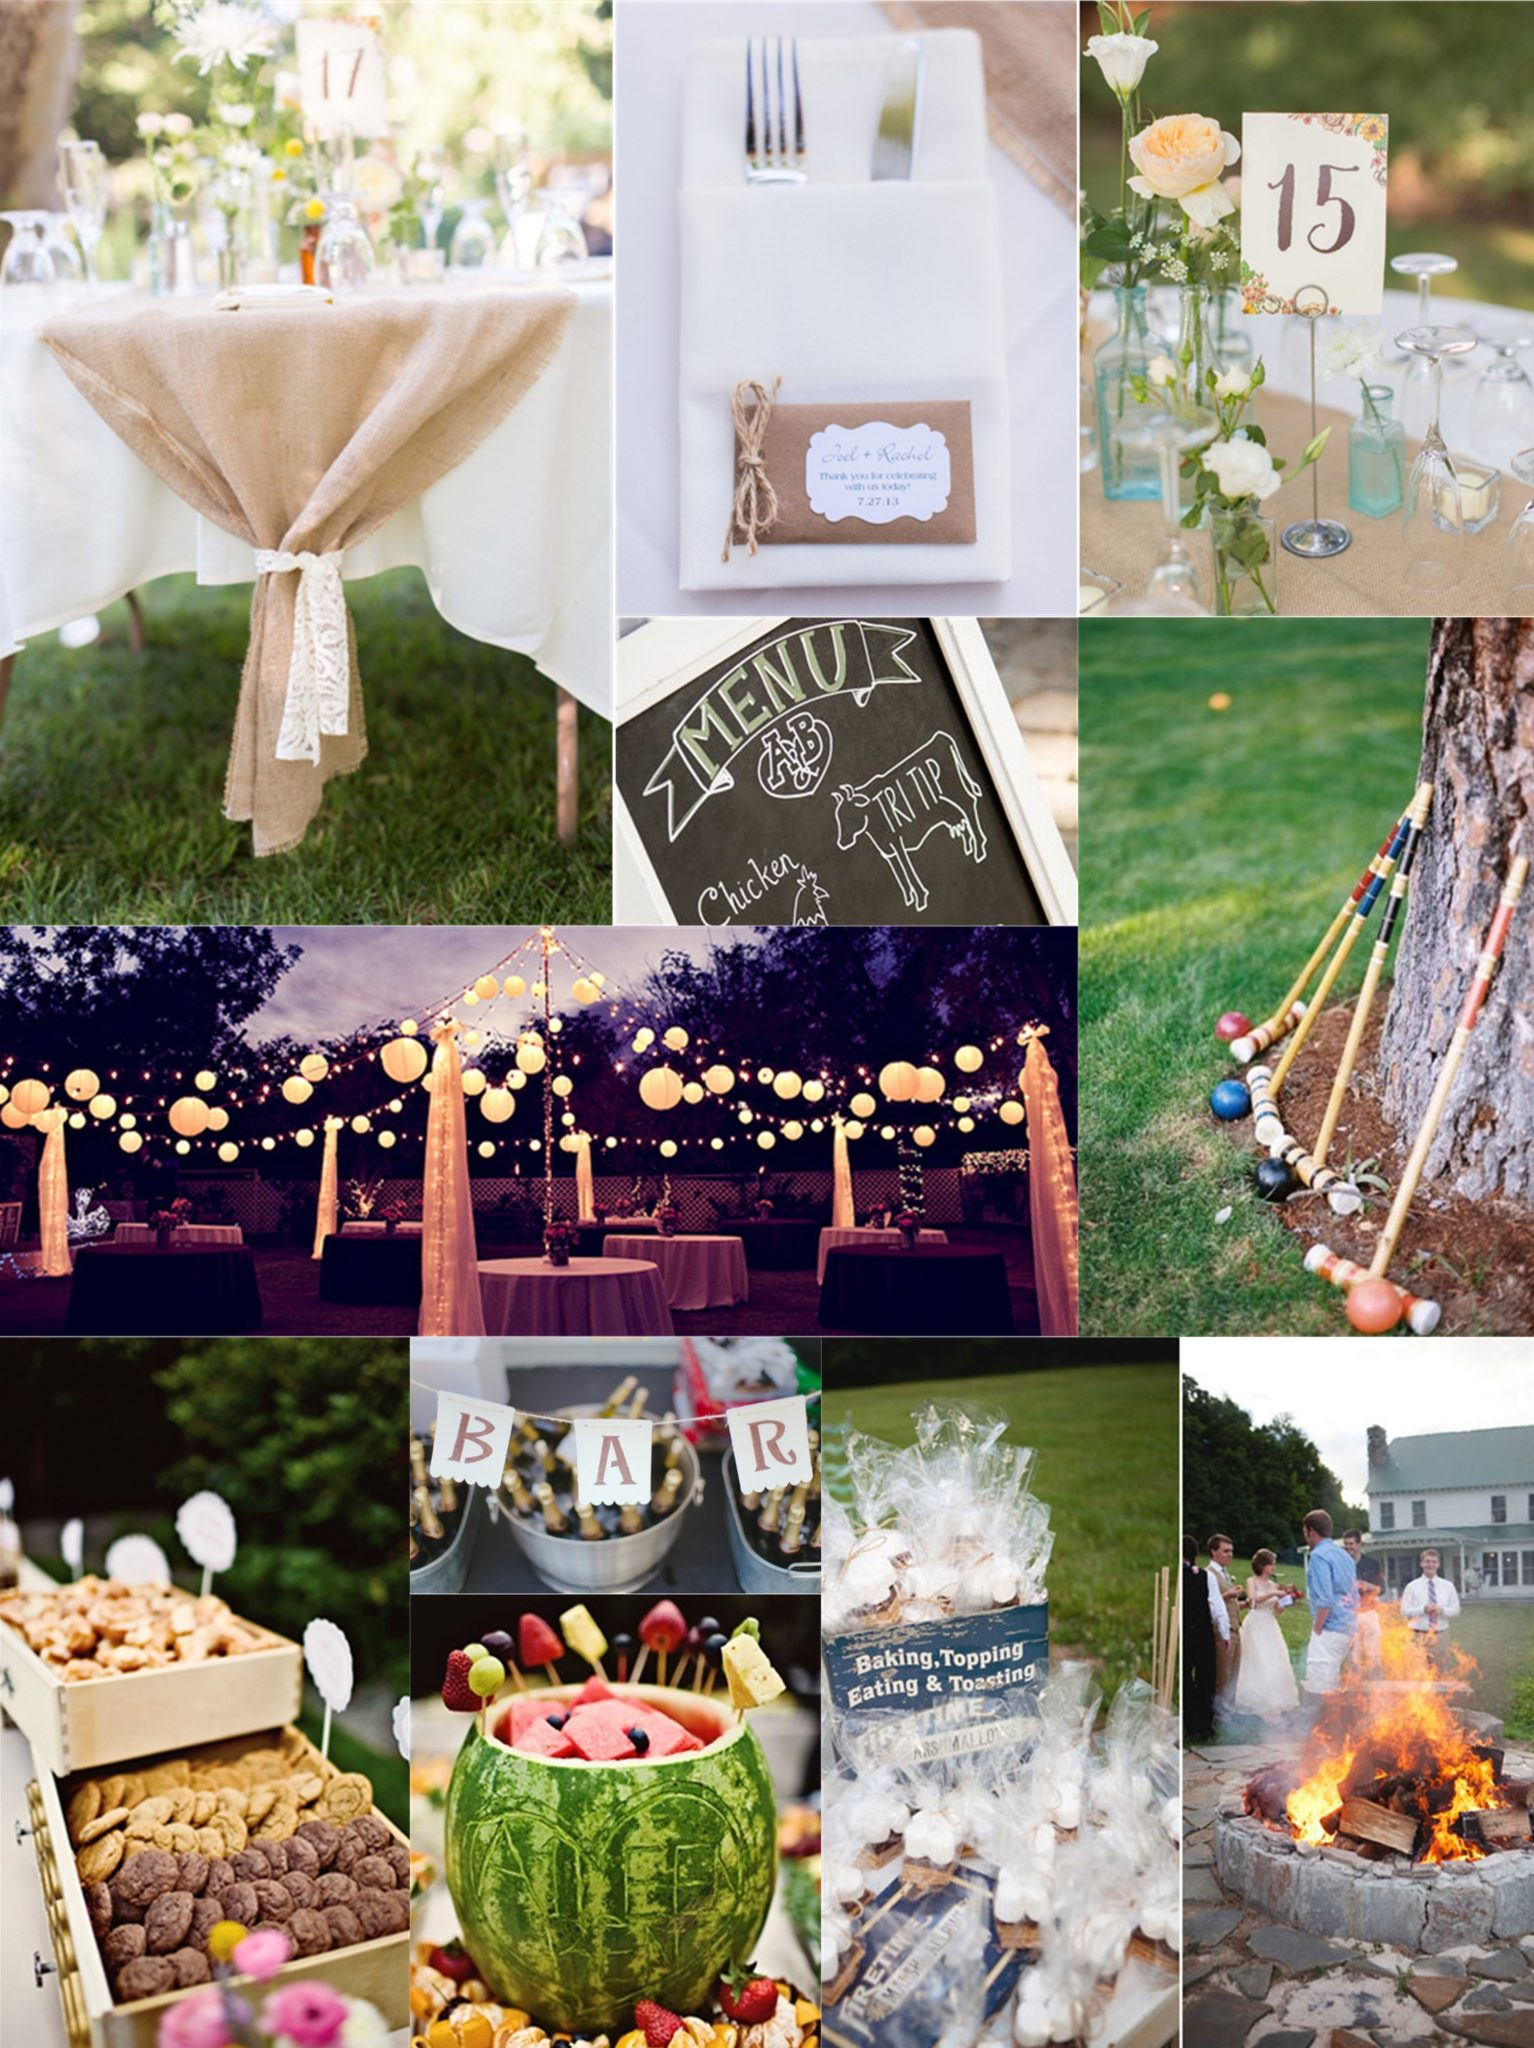 Essential guide to a backyard wedding on a budget for Outdoor wedding decorations on a budget